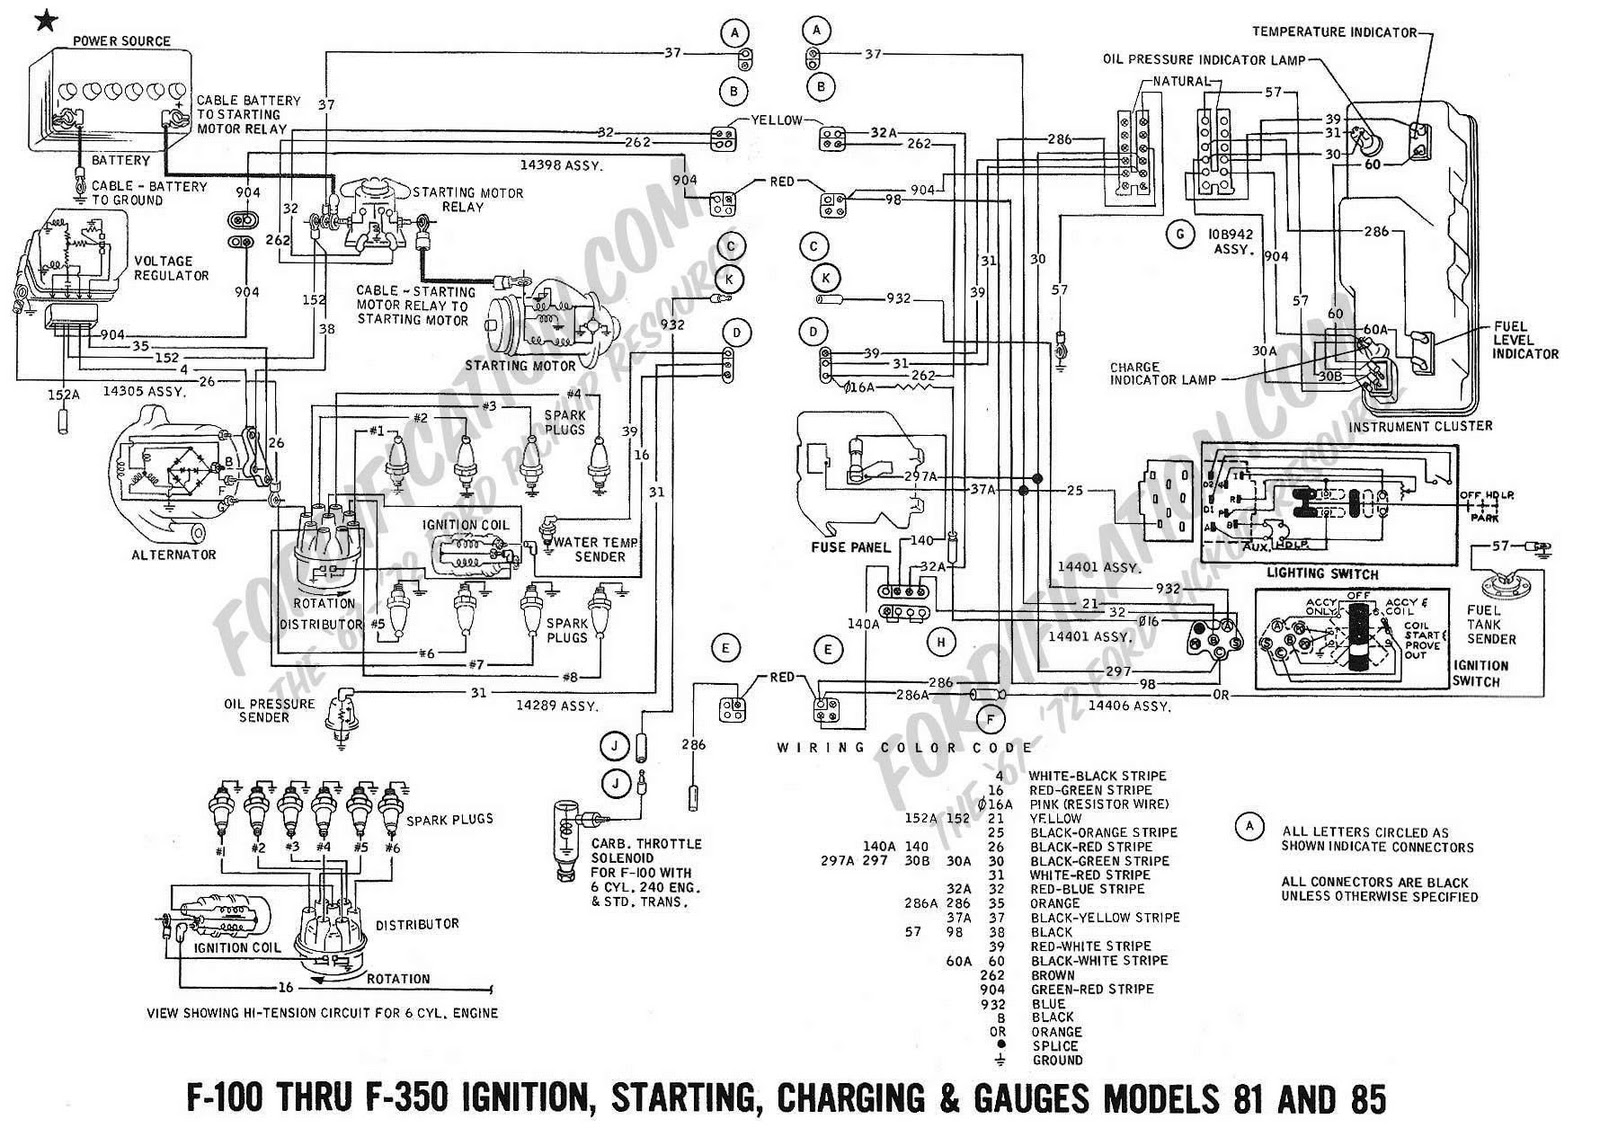 hight resolution of ford f250 wiring diagram wire management wiring diagram ford f250 wiring diagram for trailer plug ford f250 wiring diagram